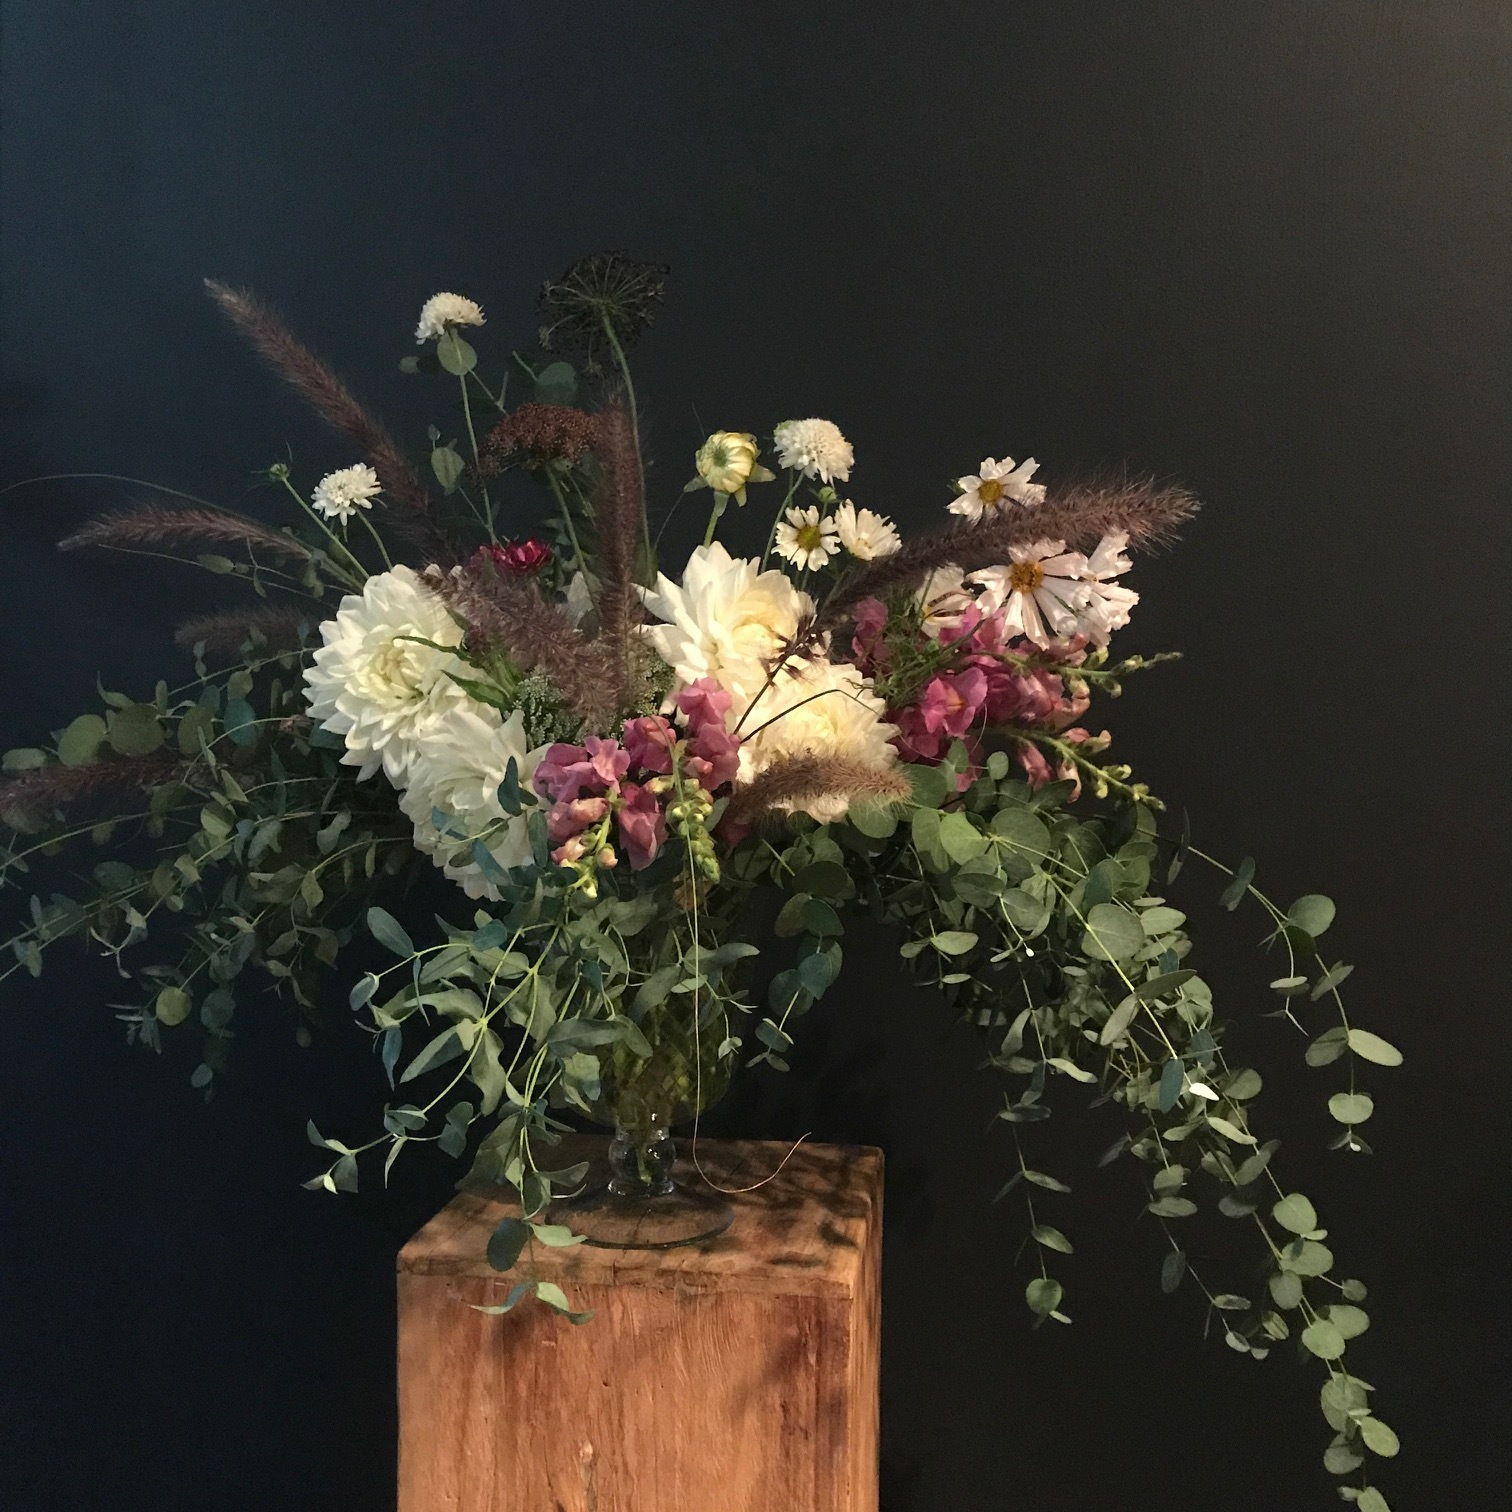 My arrangement from Flower School's Master Class with Lewis Miller.